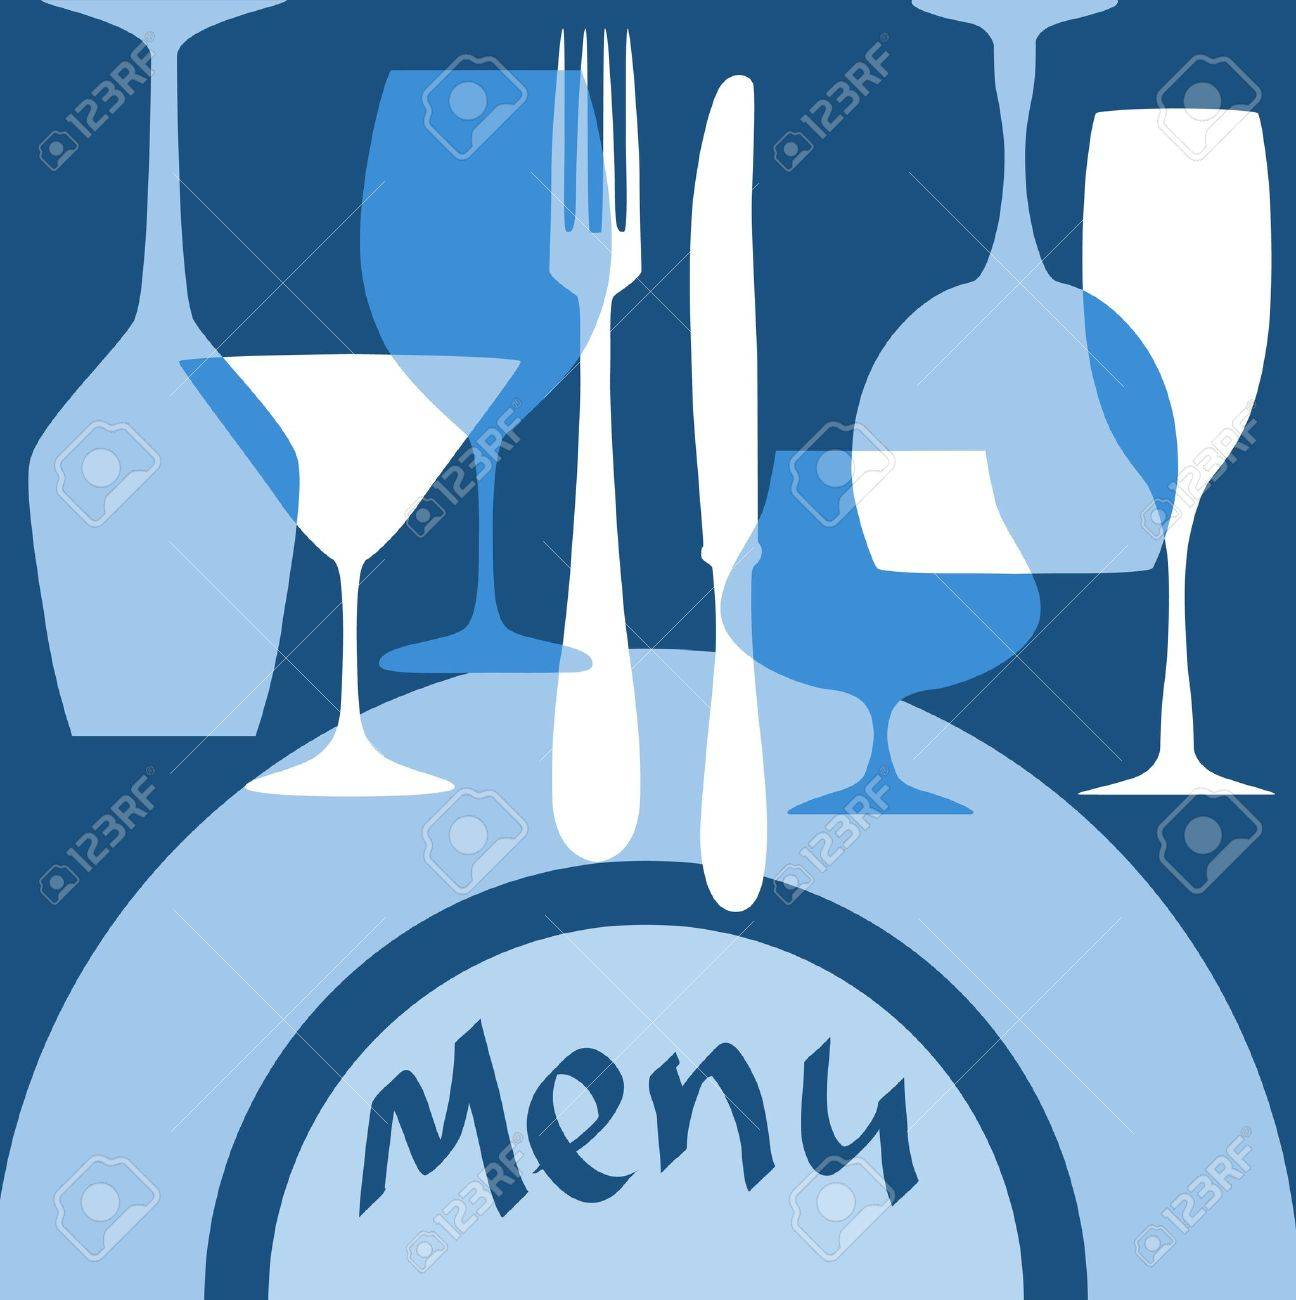 Restaurant menu cover with dishware in blue colors for design - 20916305